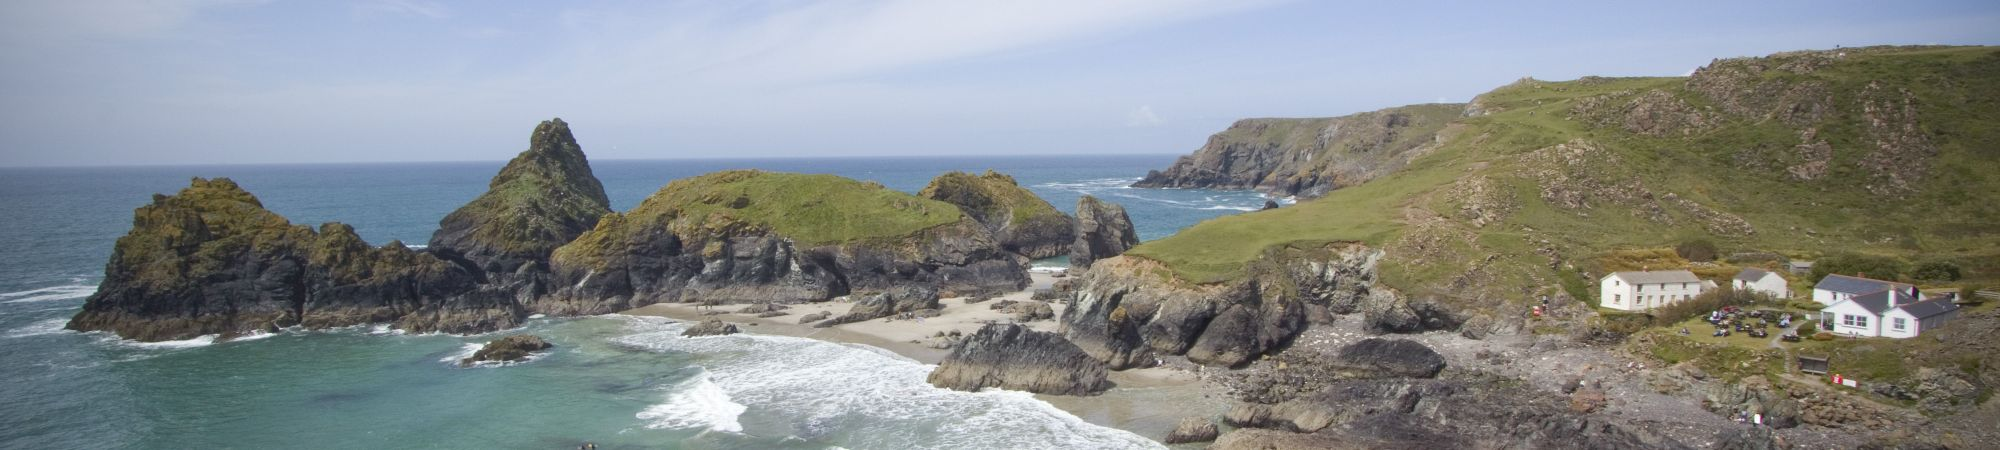 Kynance Cove, The Lizard Peninsular